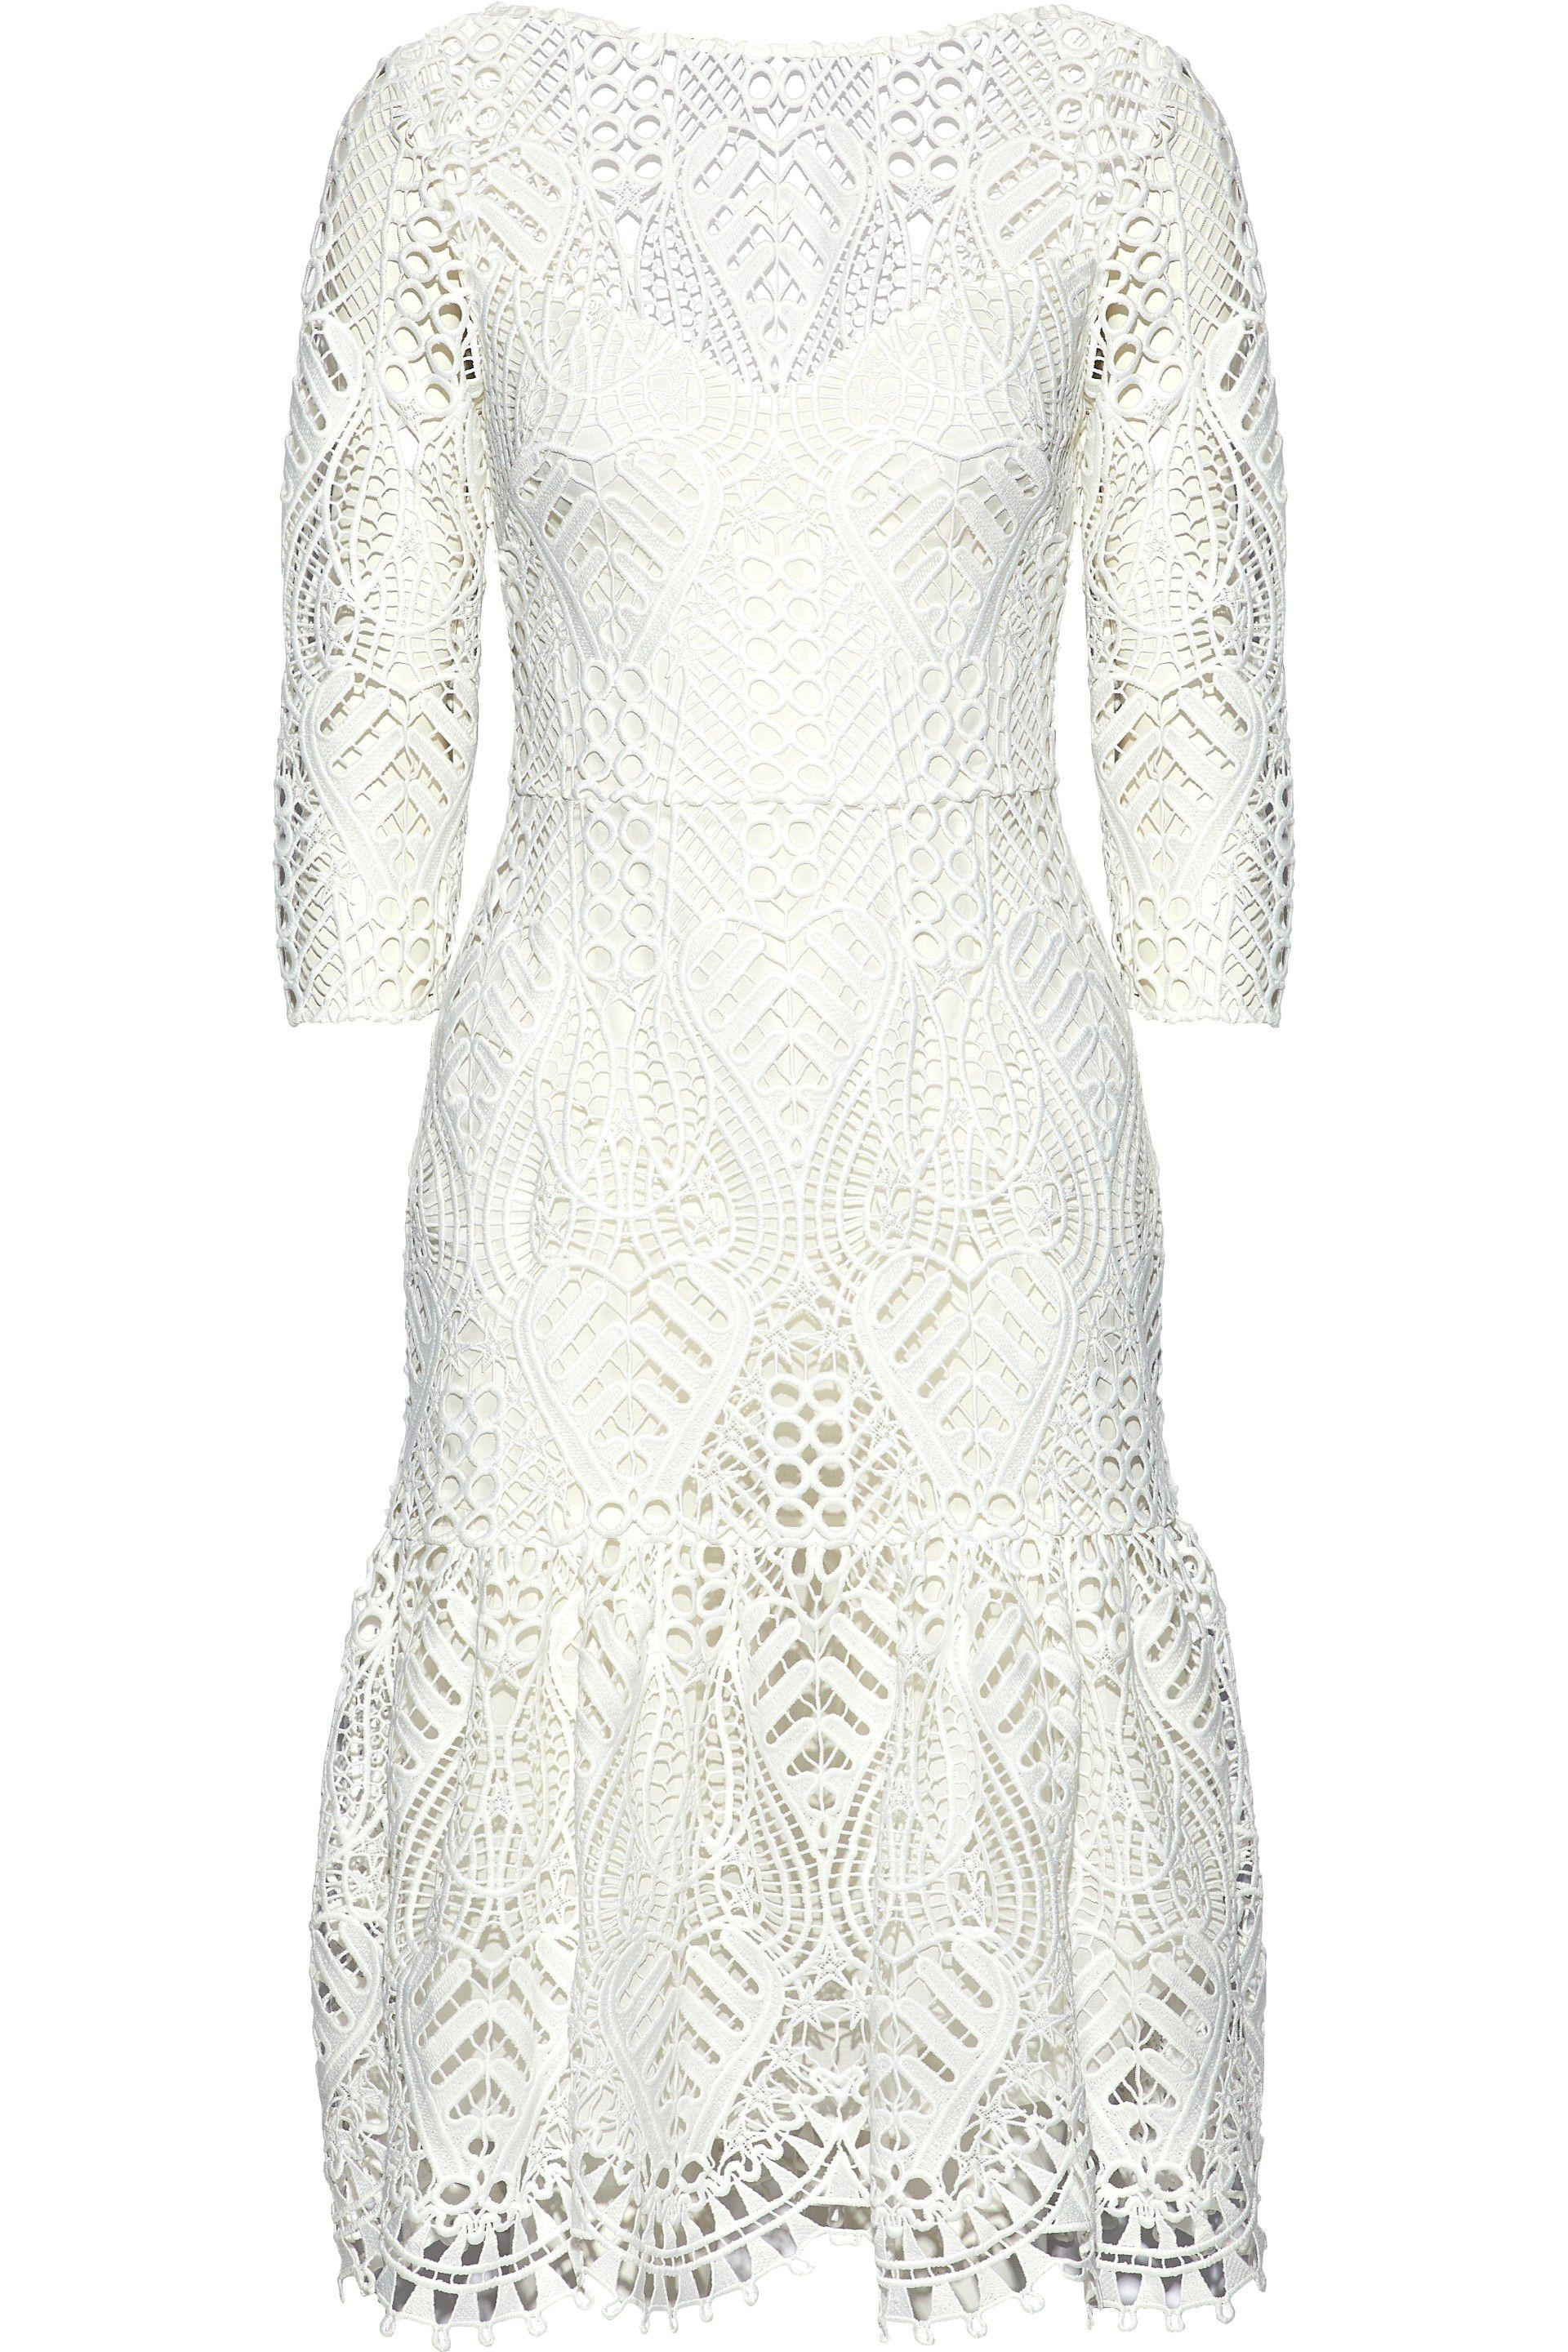 For Sale Online Store Buy Cheap Pictures Temperley London Woman New Moon Guipure Lace Dress White Size 10 Temperley London Discount Authentic Sale Clearance Store 3X3ETo